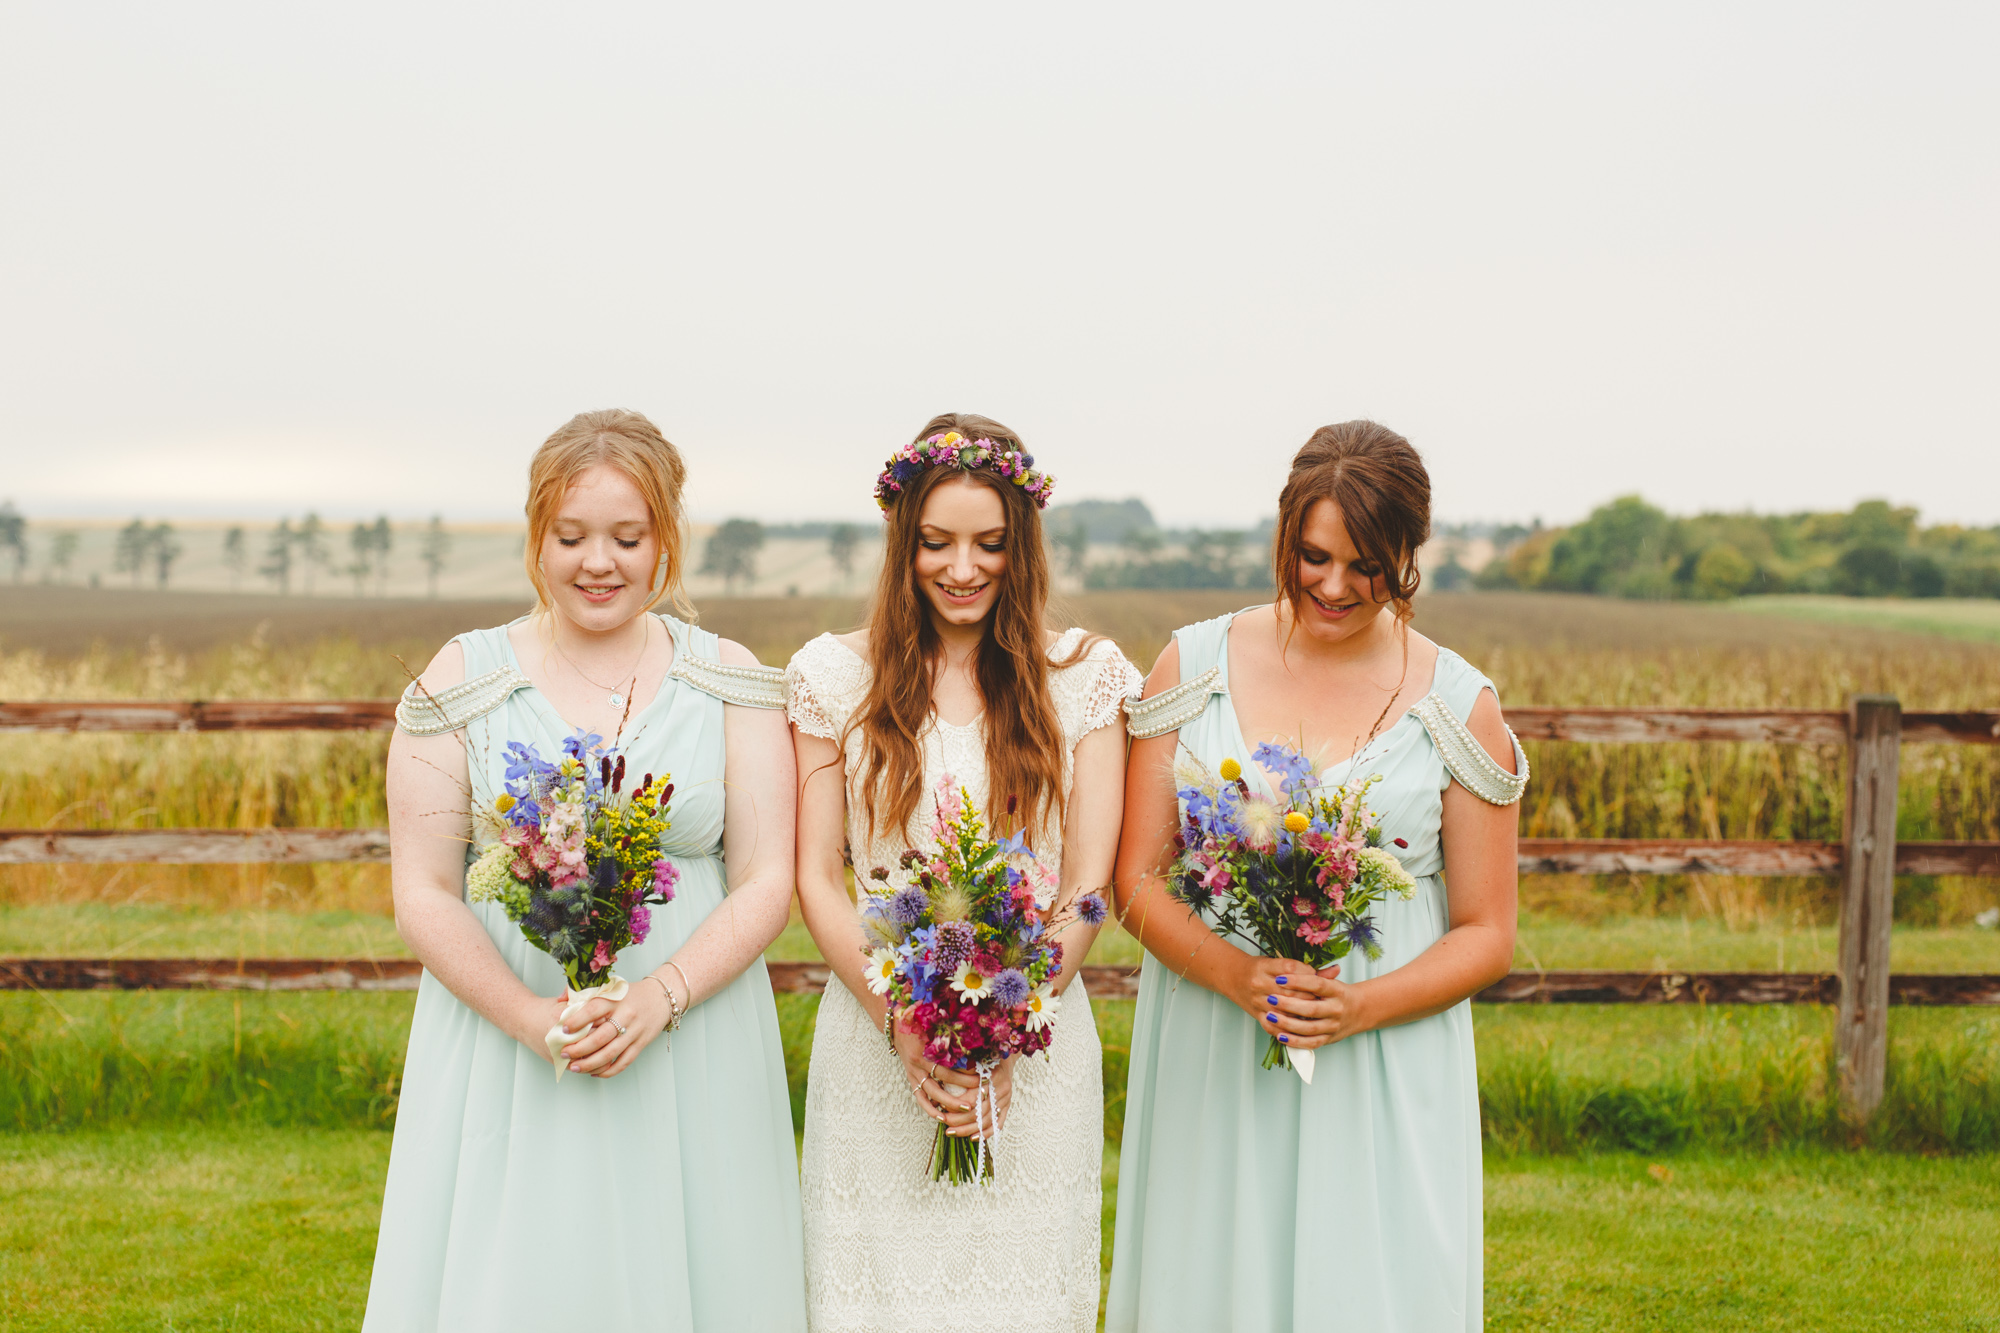 alternative-wedding-photographer-uk-camera-hannah-13.jpg